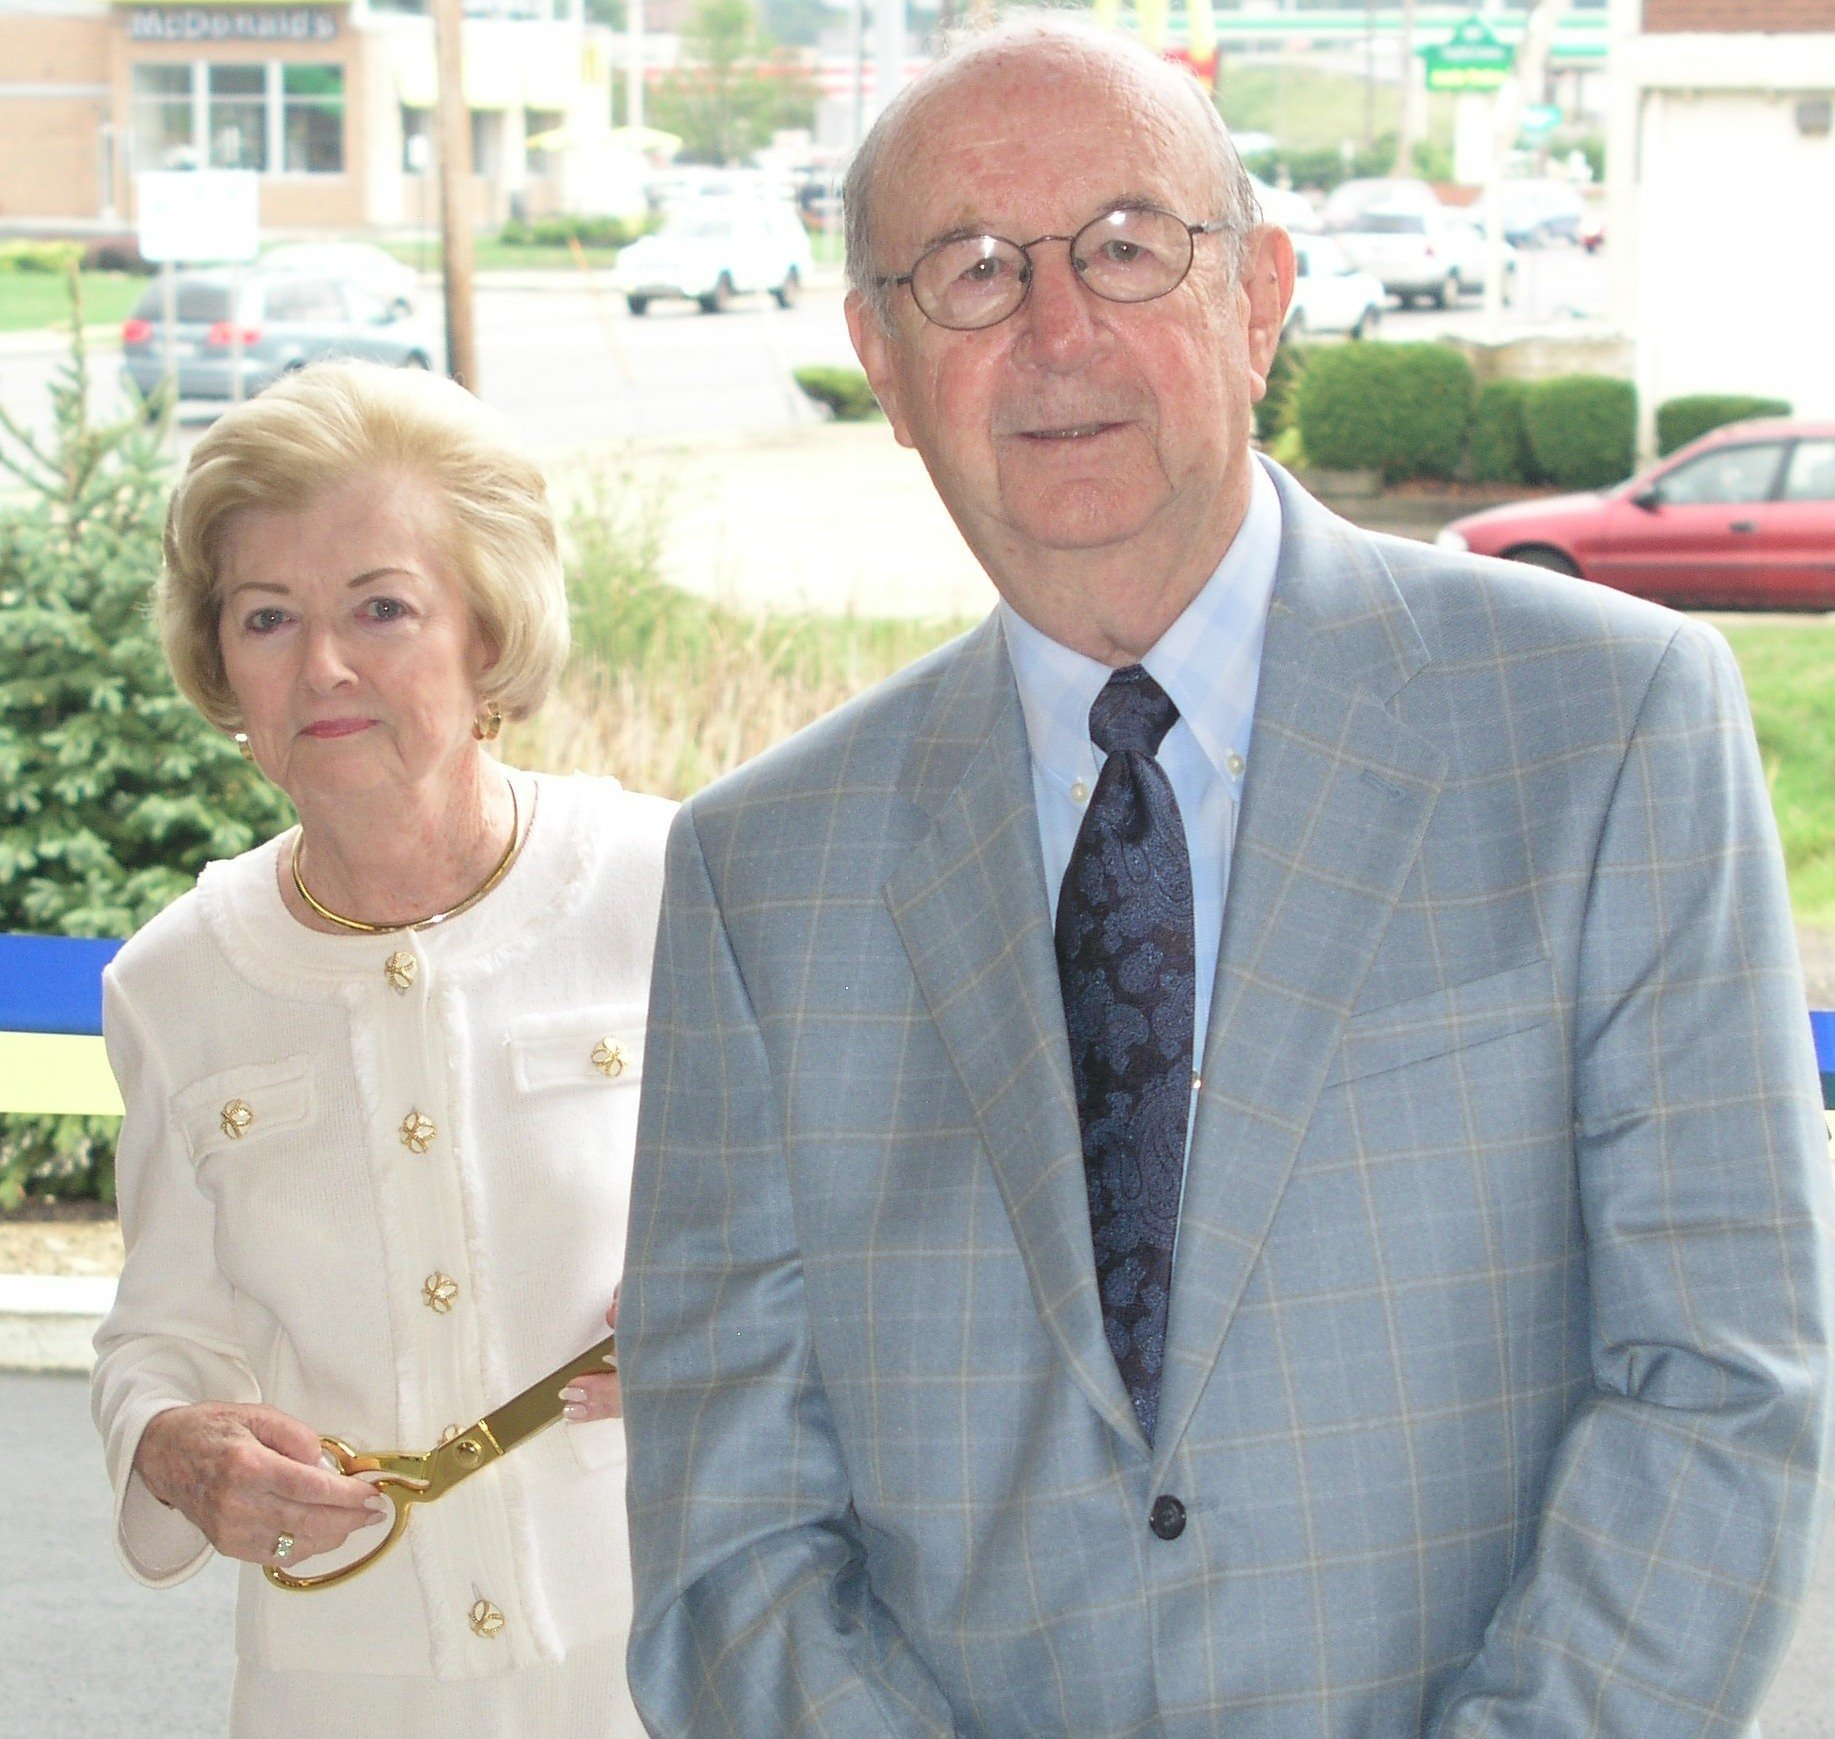 Founder of Conrad's Tire continues to find primo locations